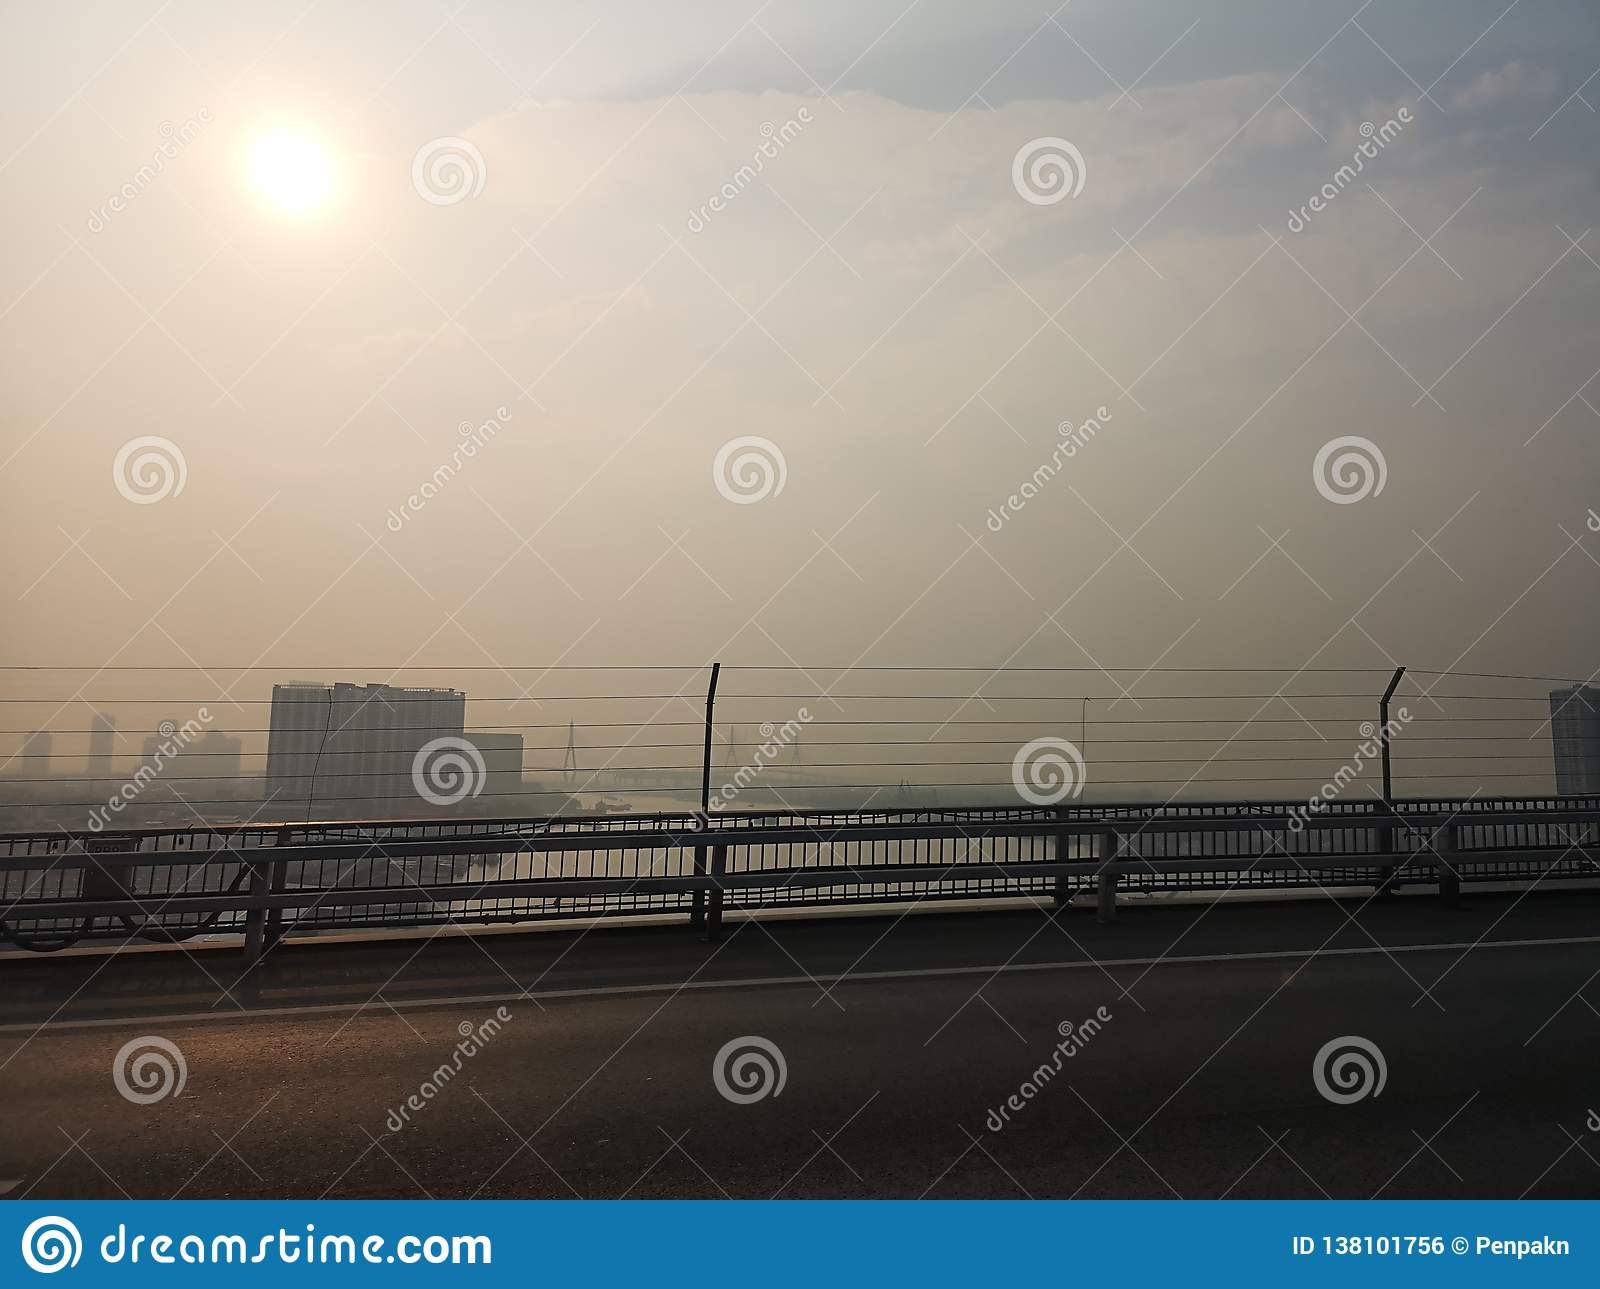 Bangkok Thailand The​ weather is​ not​ ​bright toxic smoke this morning